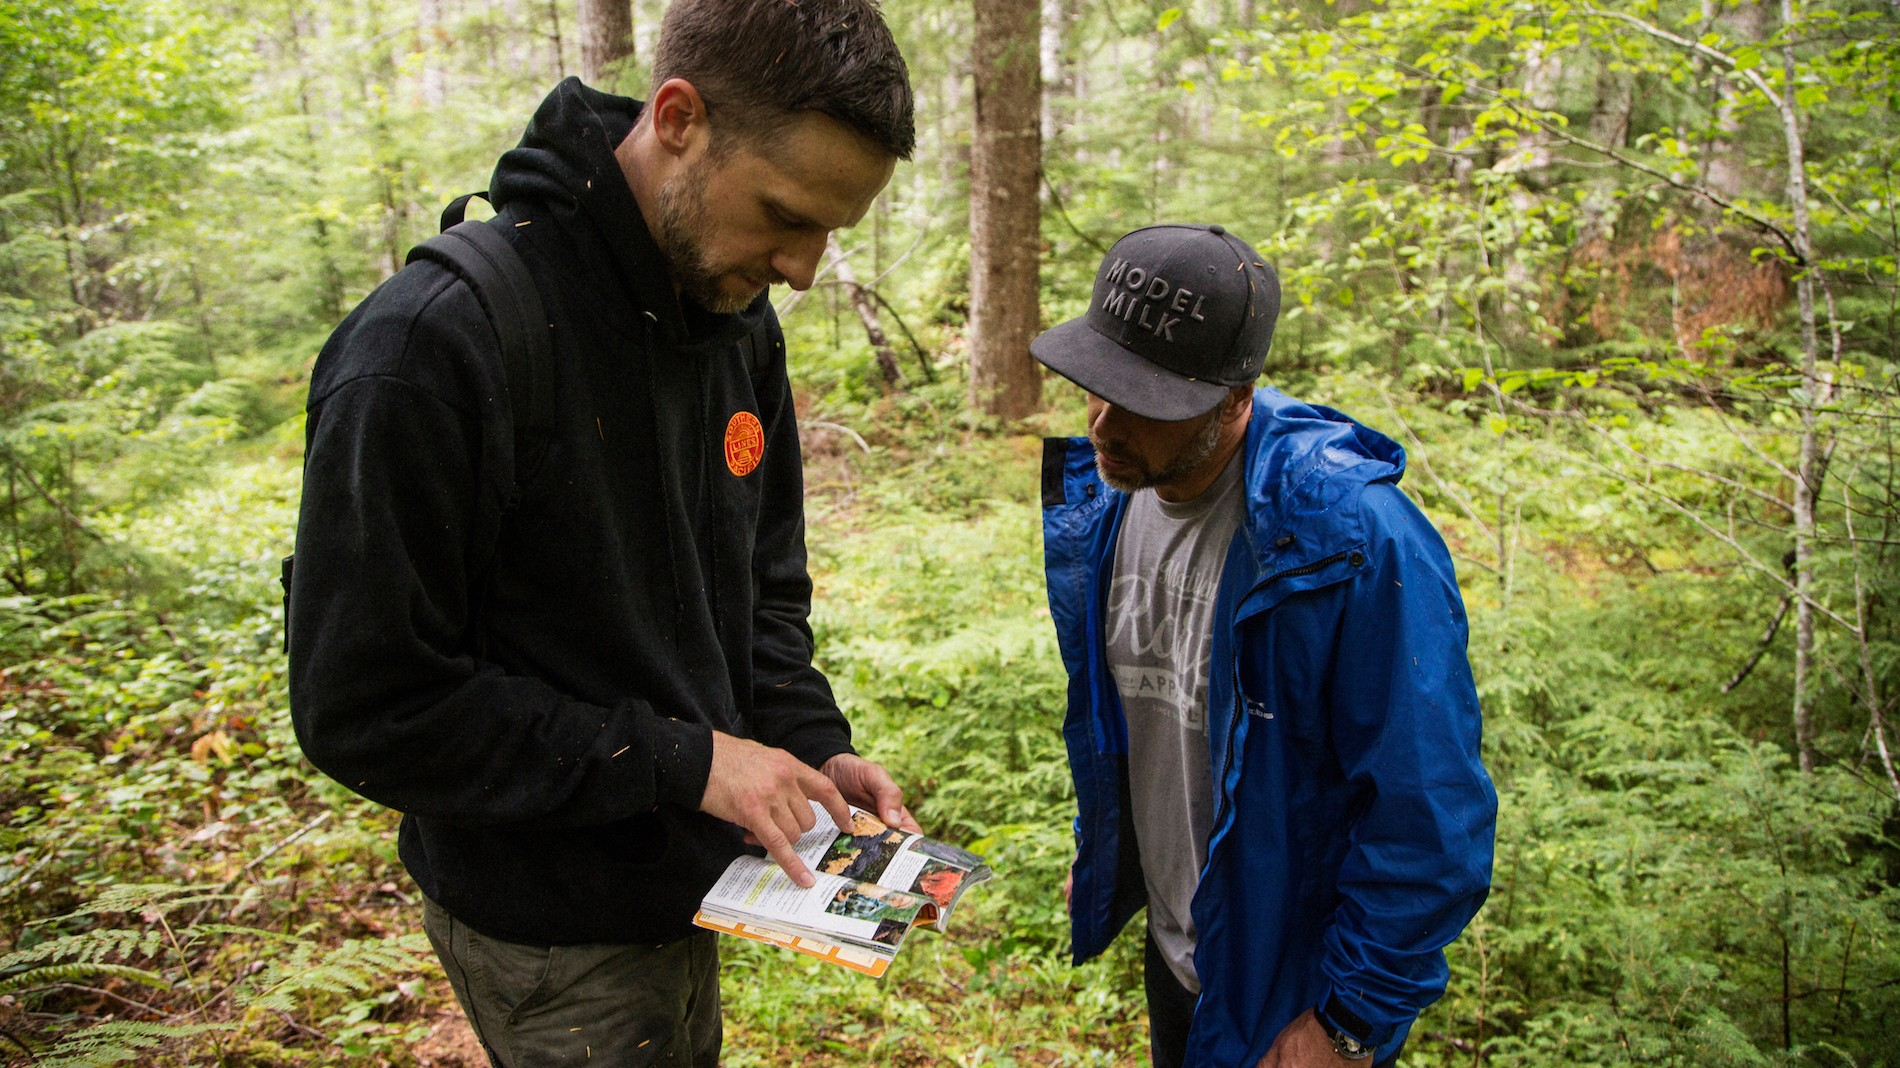 Ryan Courter looks up information about an unusual mushroom that chef Justin Leboe found. Mushrooms in Portland, Oregon. August 2016. Matt Lutton / Boreal Collective for Vice Munchies